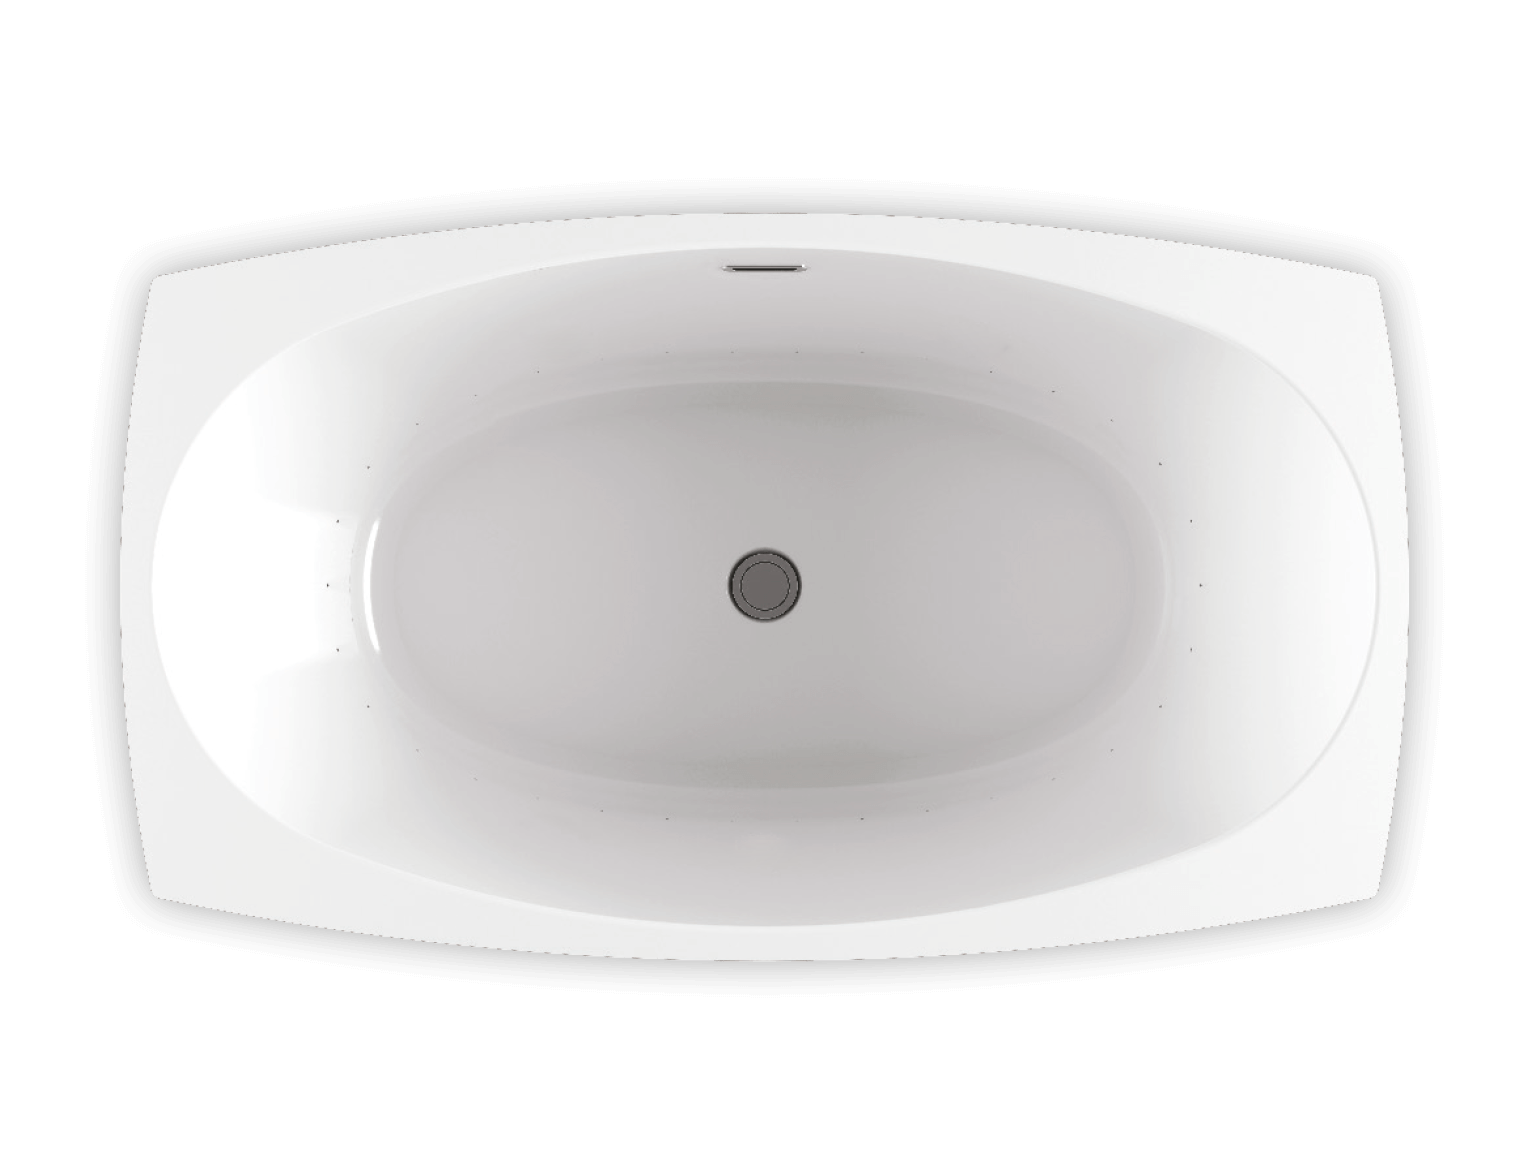 Bainultra Esthesia® freestanding air jet bathtub for your modern bathroom